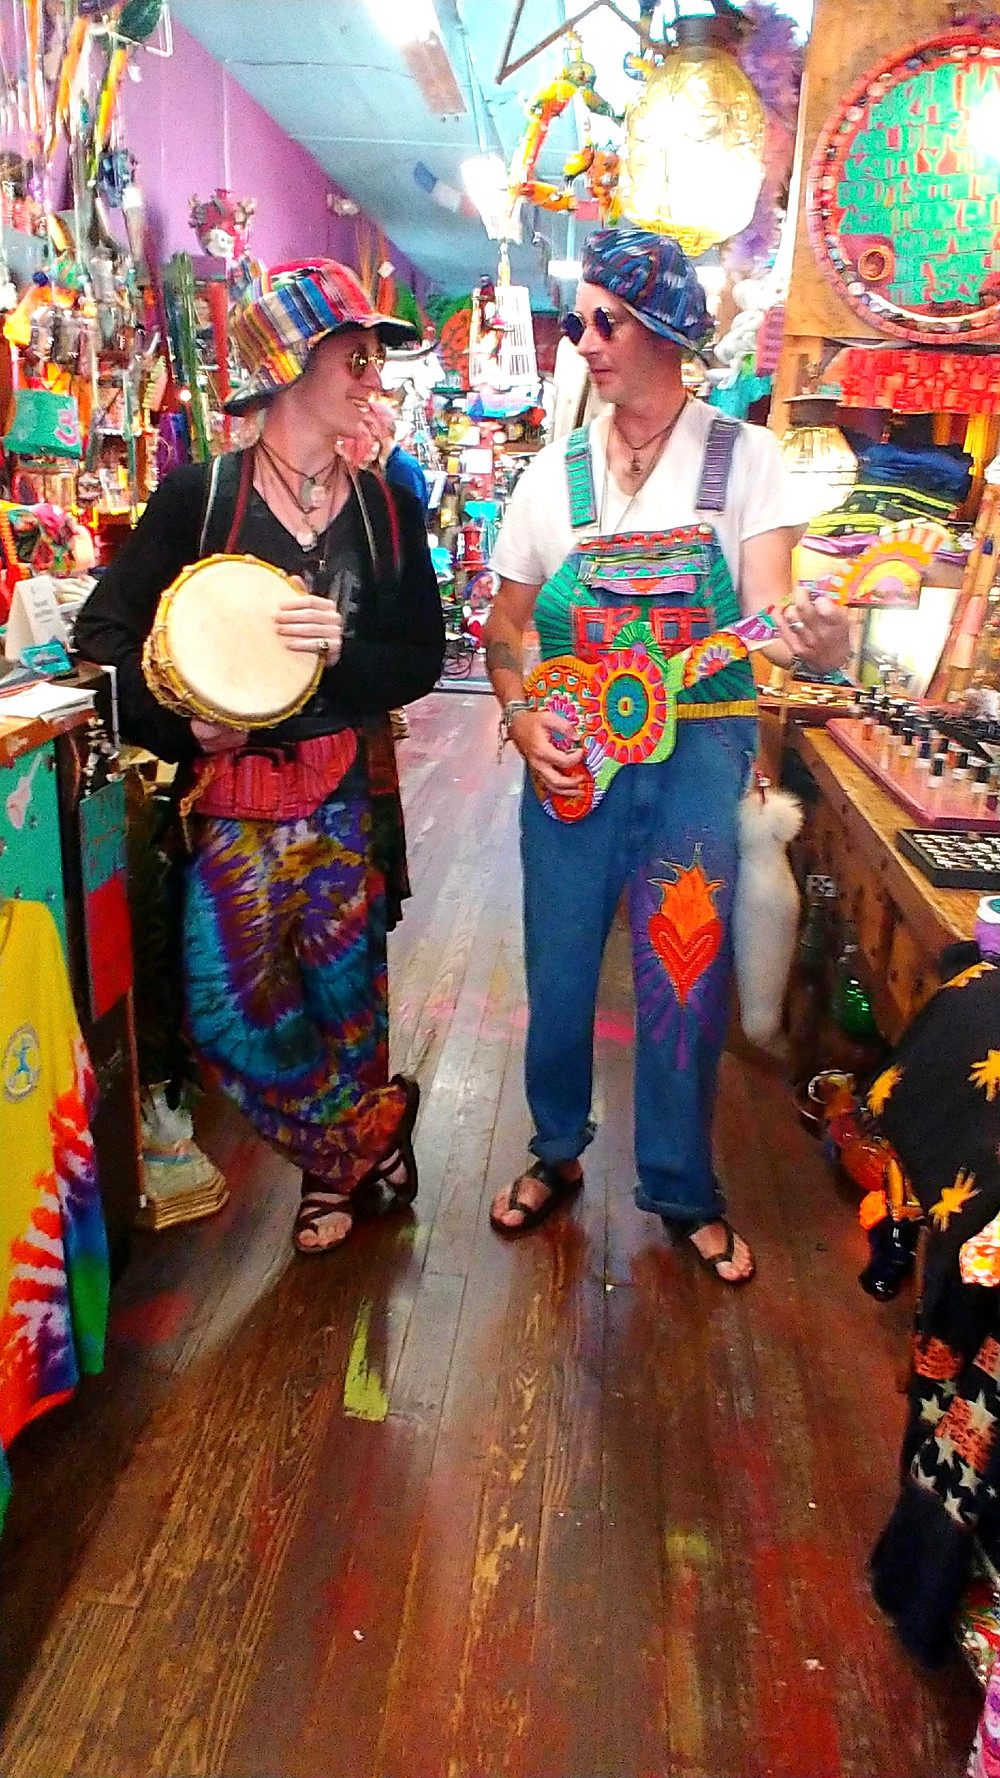 two bohemian hippies playing a guitar and a djembe  drum